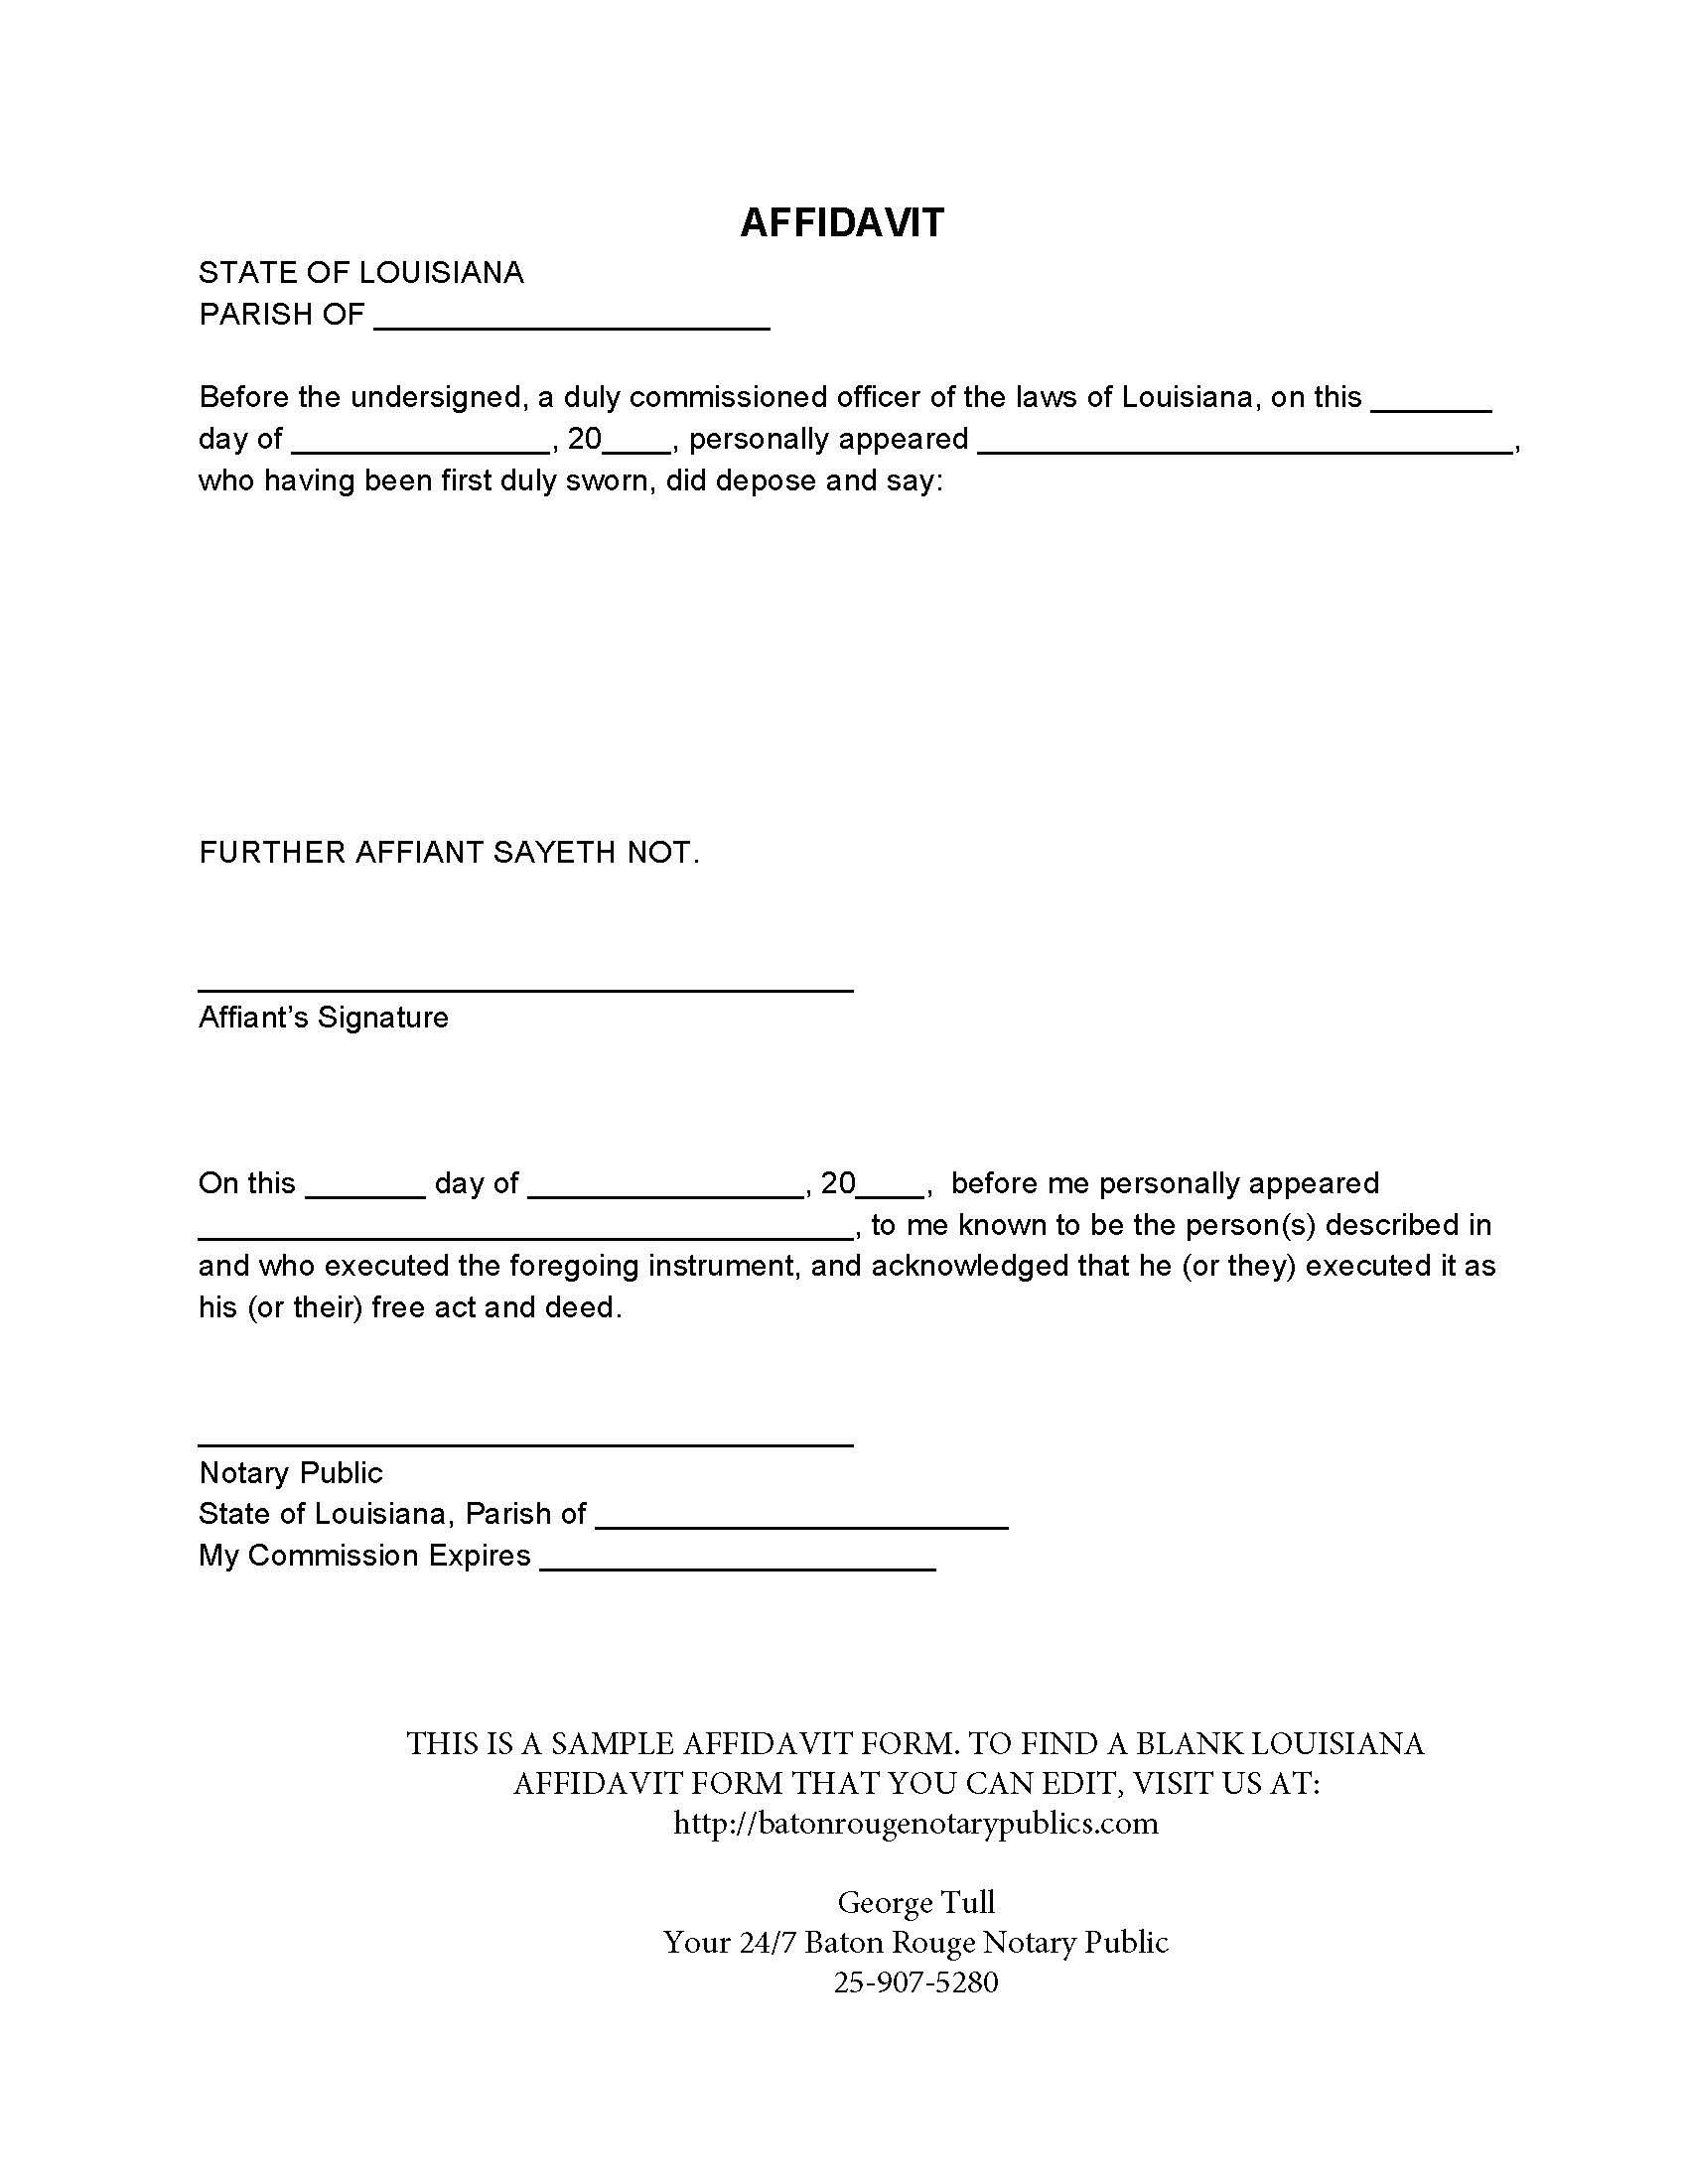 notary signature block template